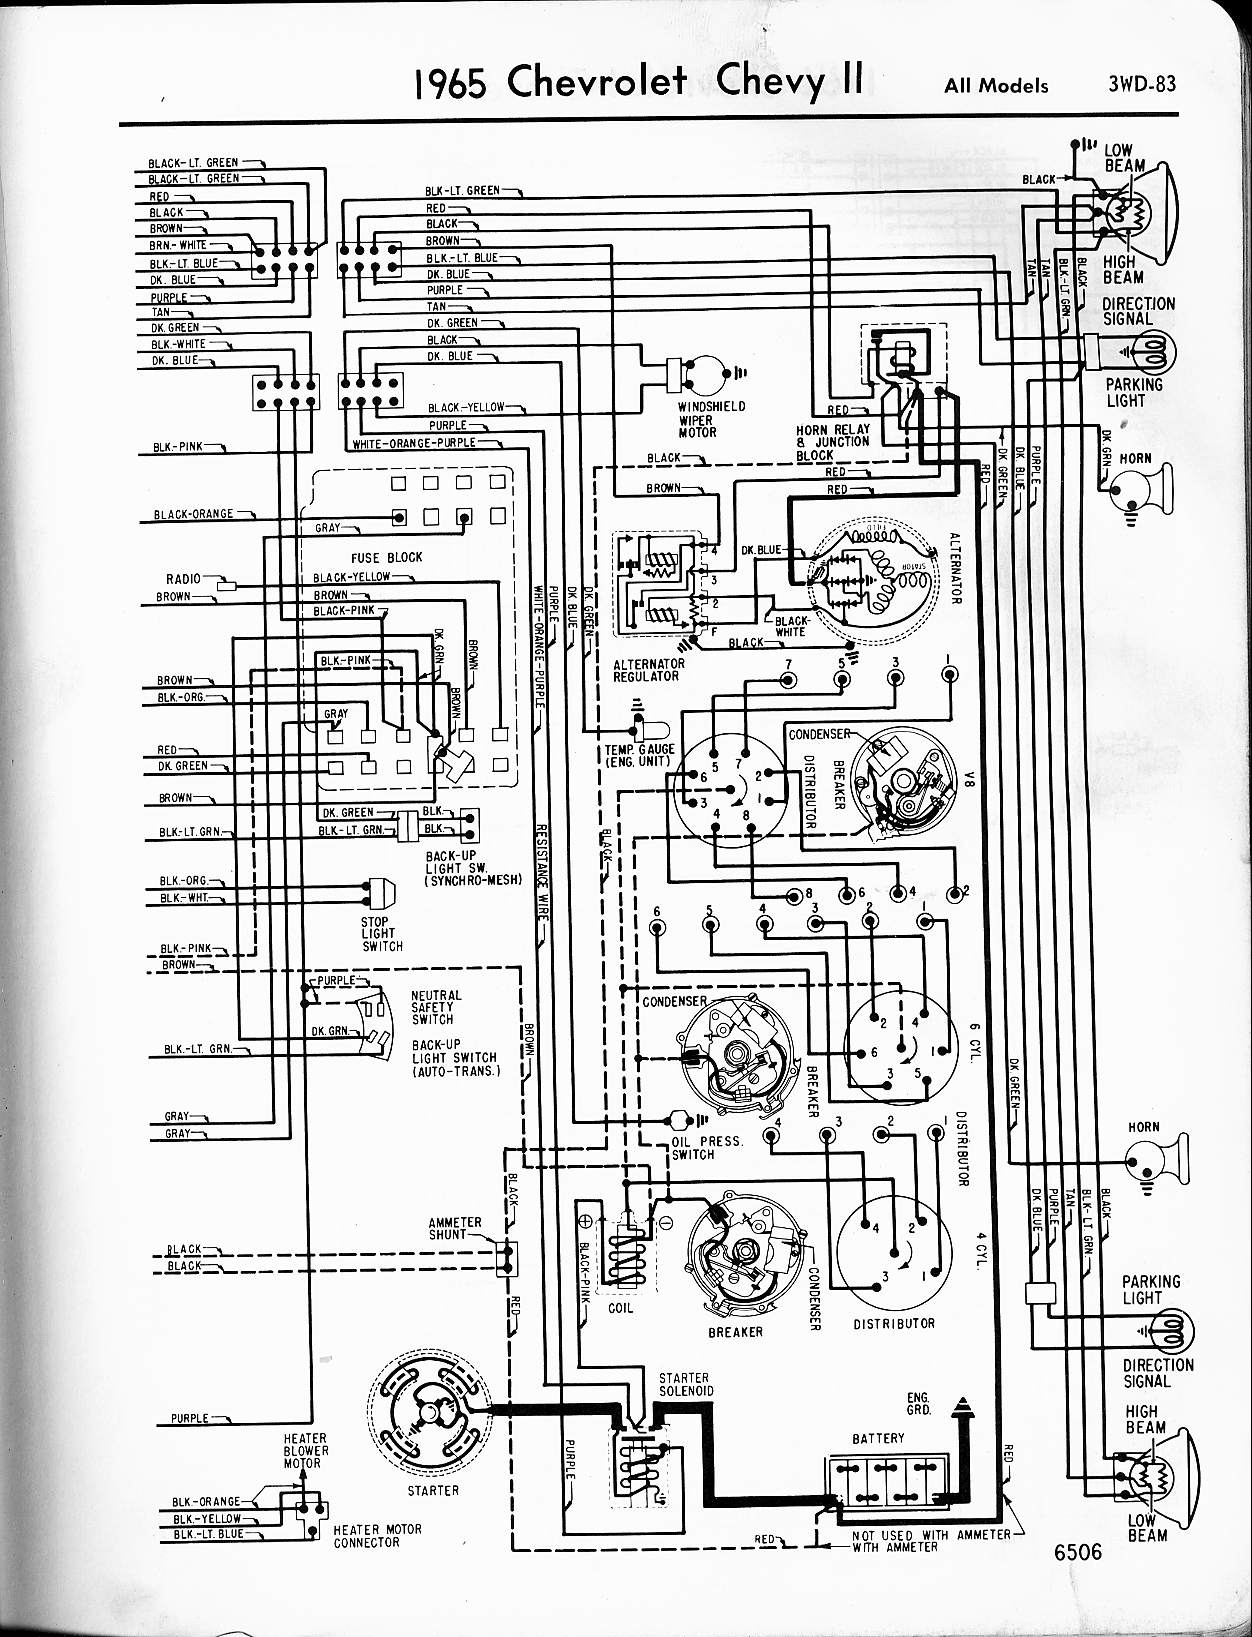 1965 Chevy Corvette Wiring Diagram Library 88 Truck Ignition Diagrams 1988 Ford Mustang Gt